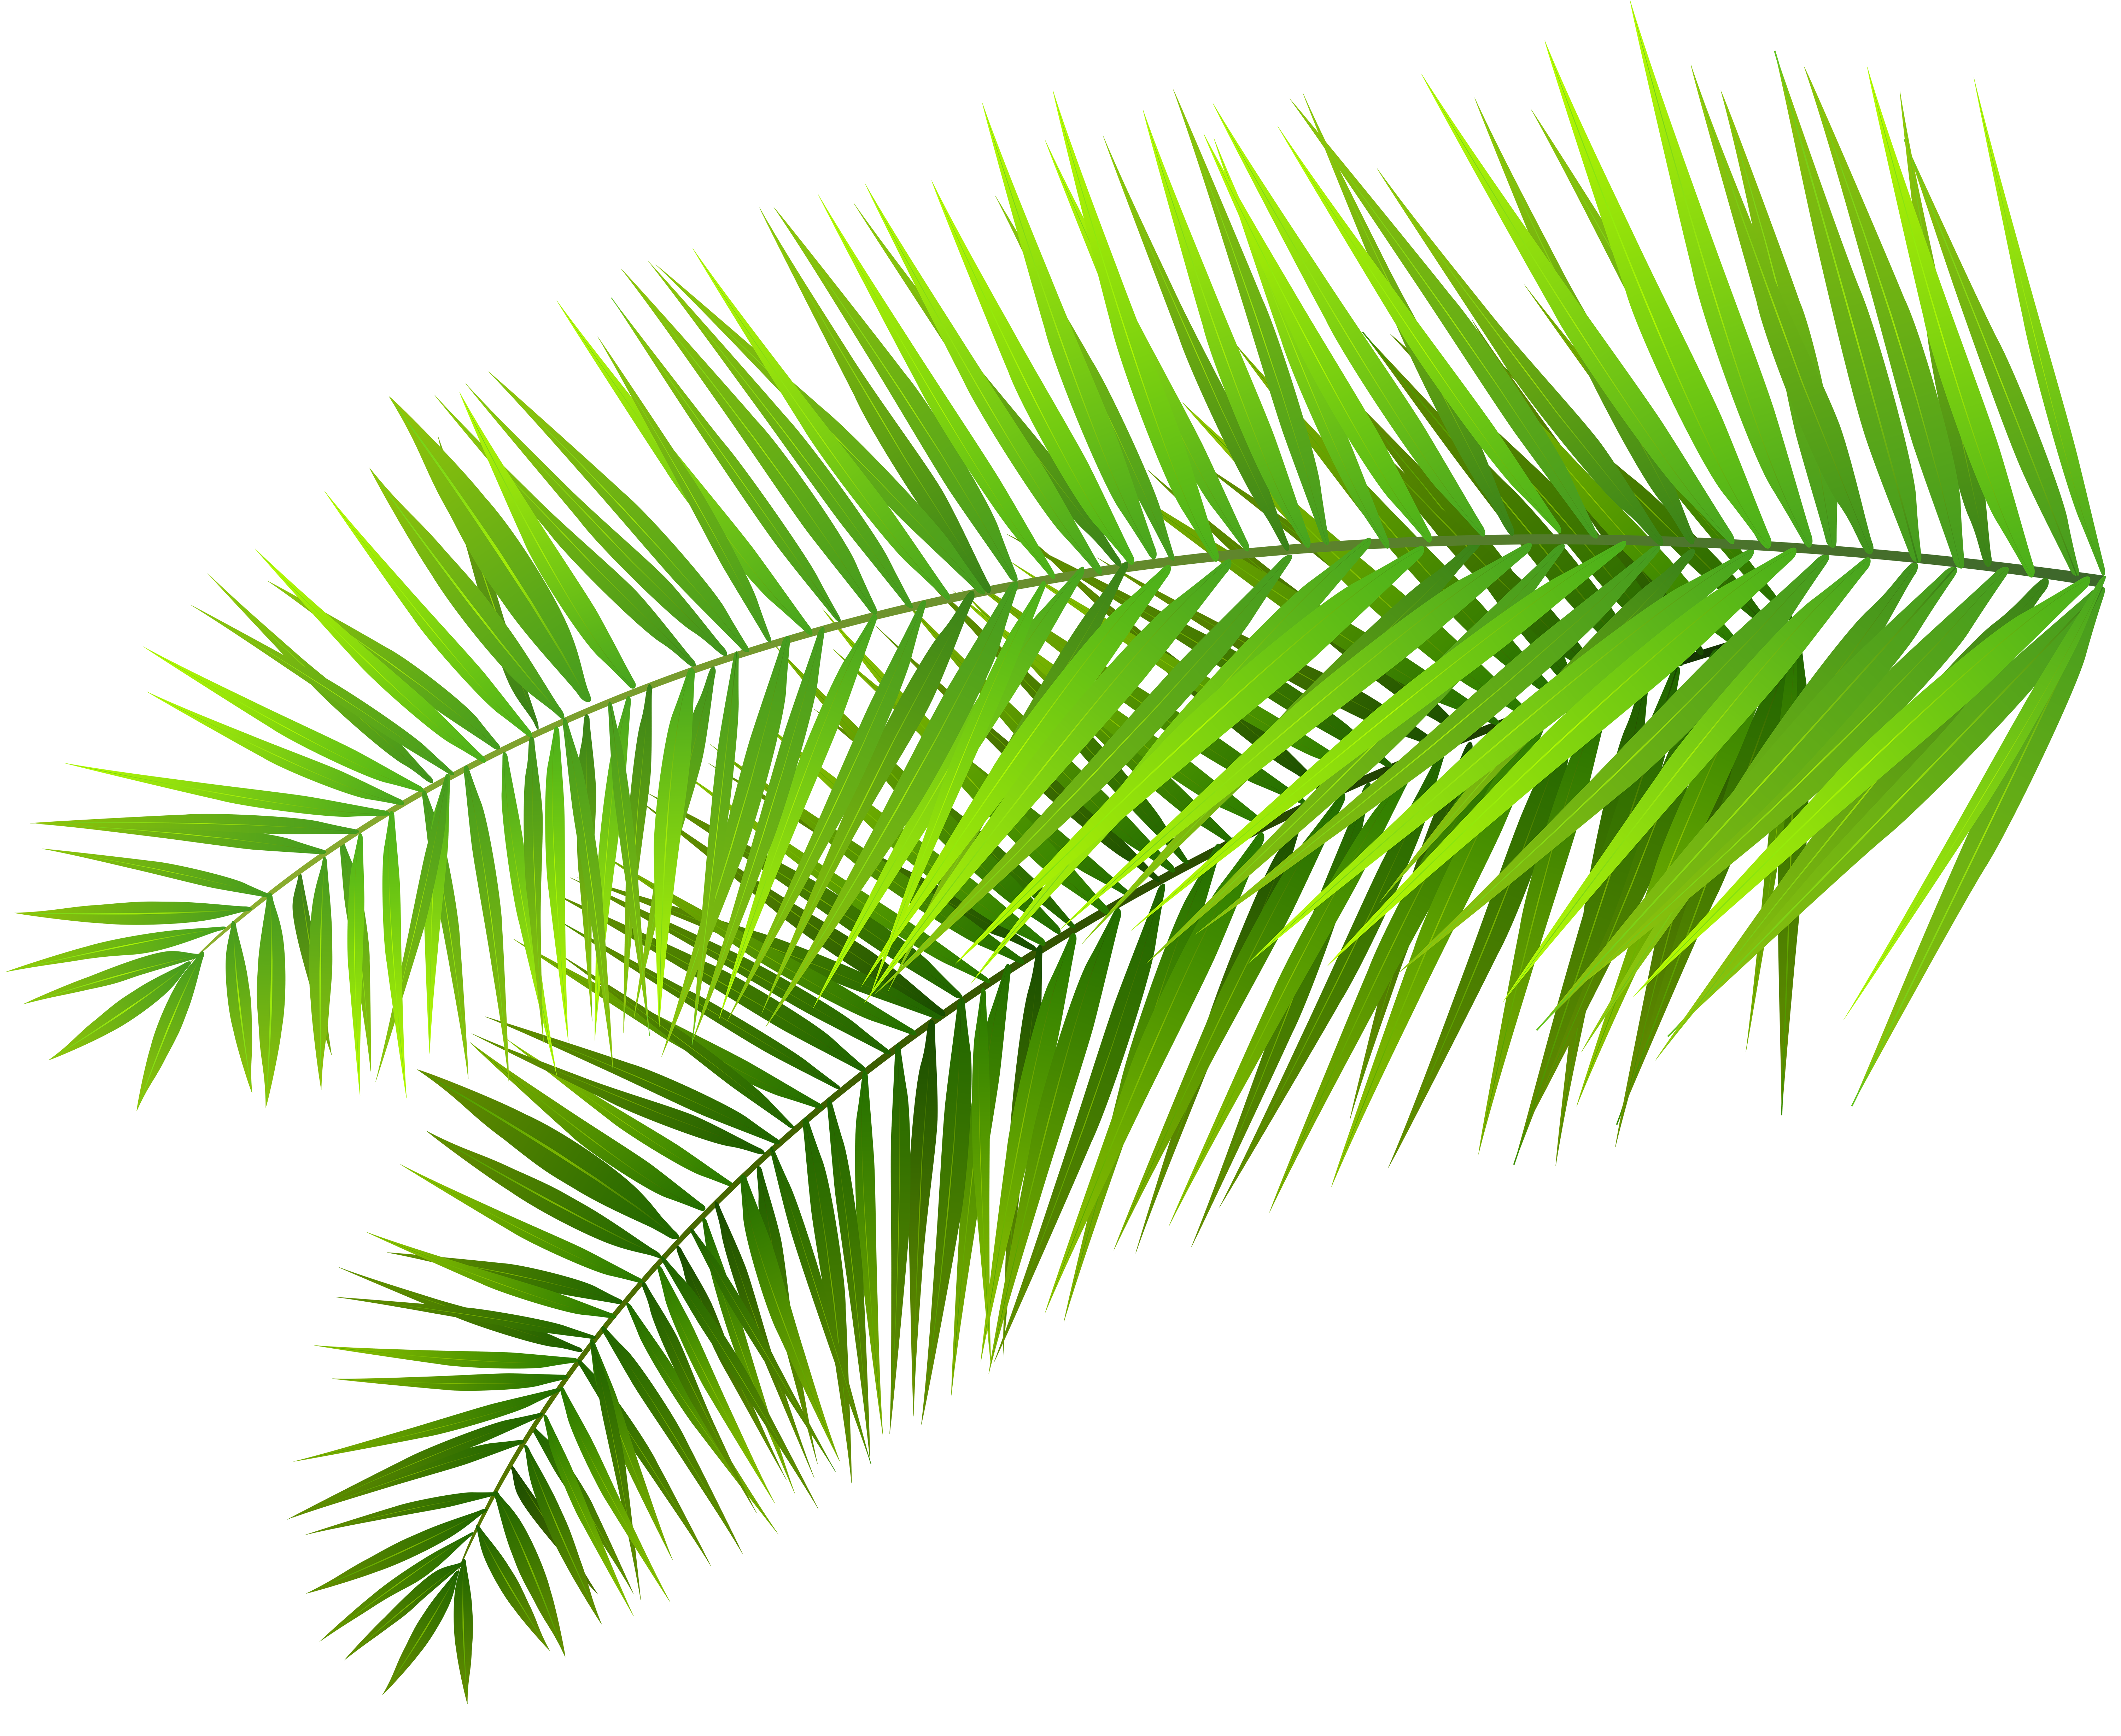 Leaves Clipart Aesthetic Leaves Aesthetic Transparent Free For Download On Webstockreview 2021 Download all photos and use them even for commercial projects. webstockreview